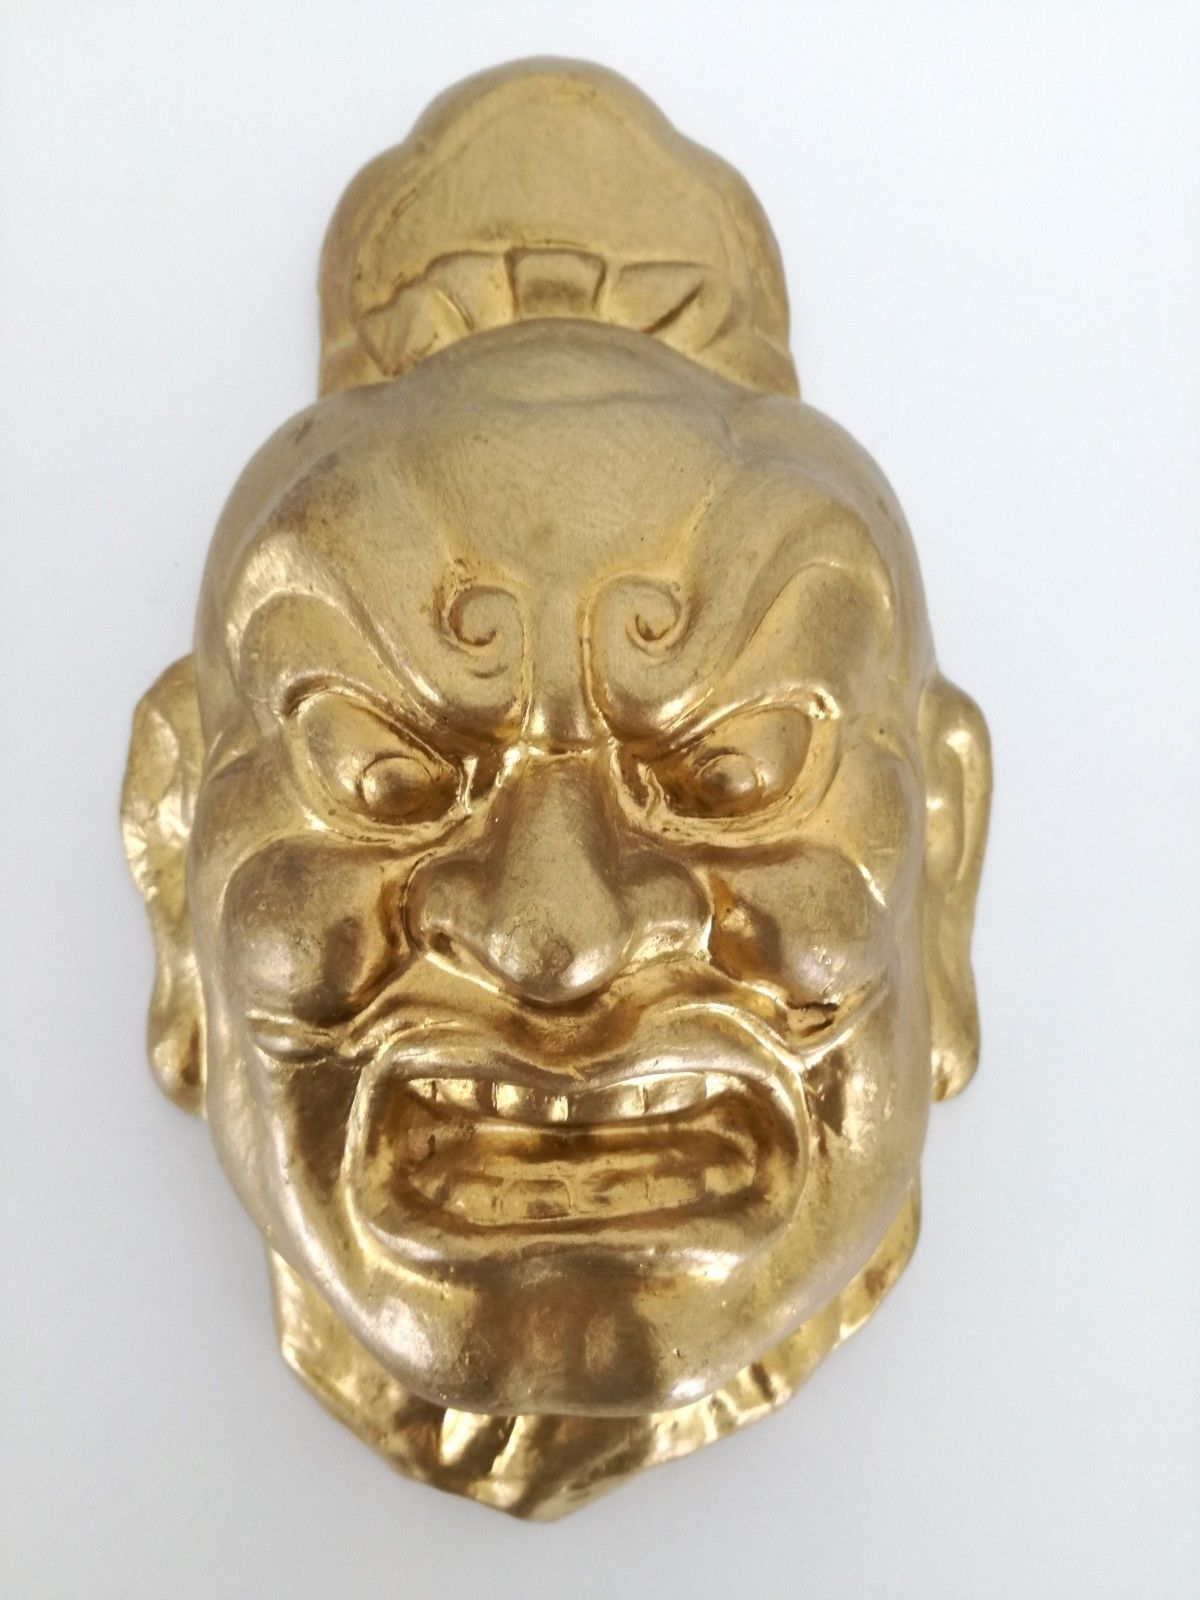 Vintage or Antique Chinese plaster mask gold face 10""